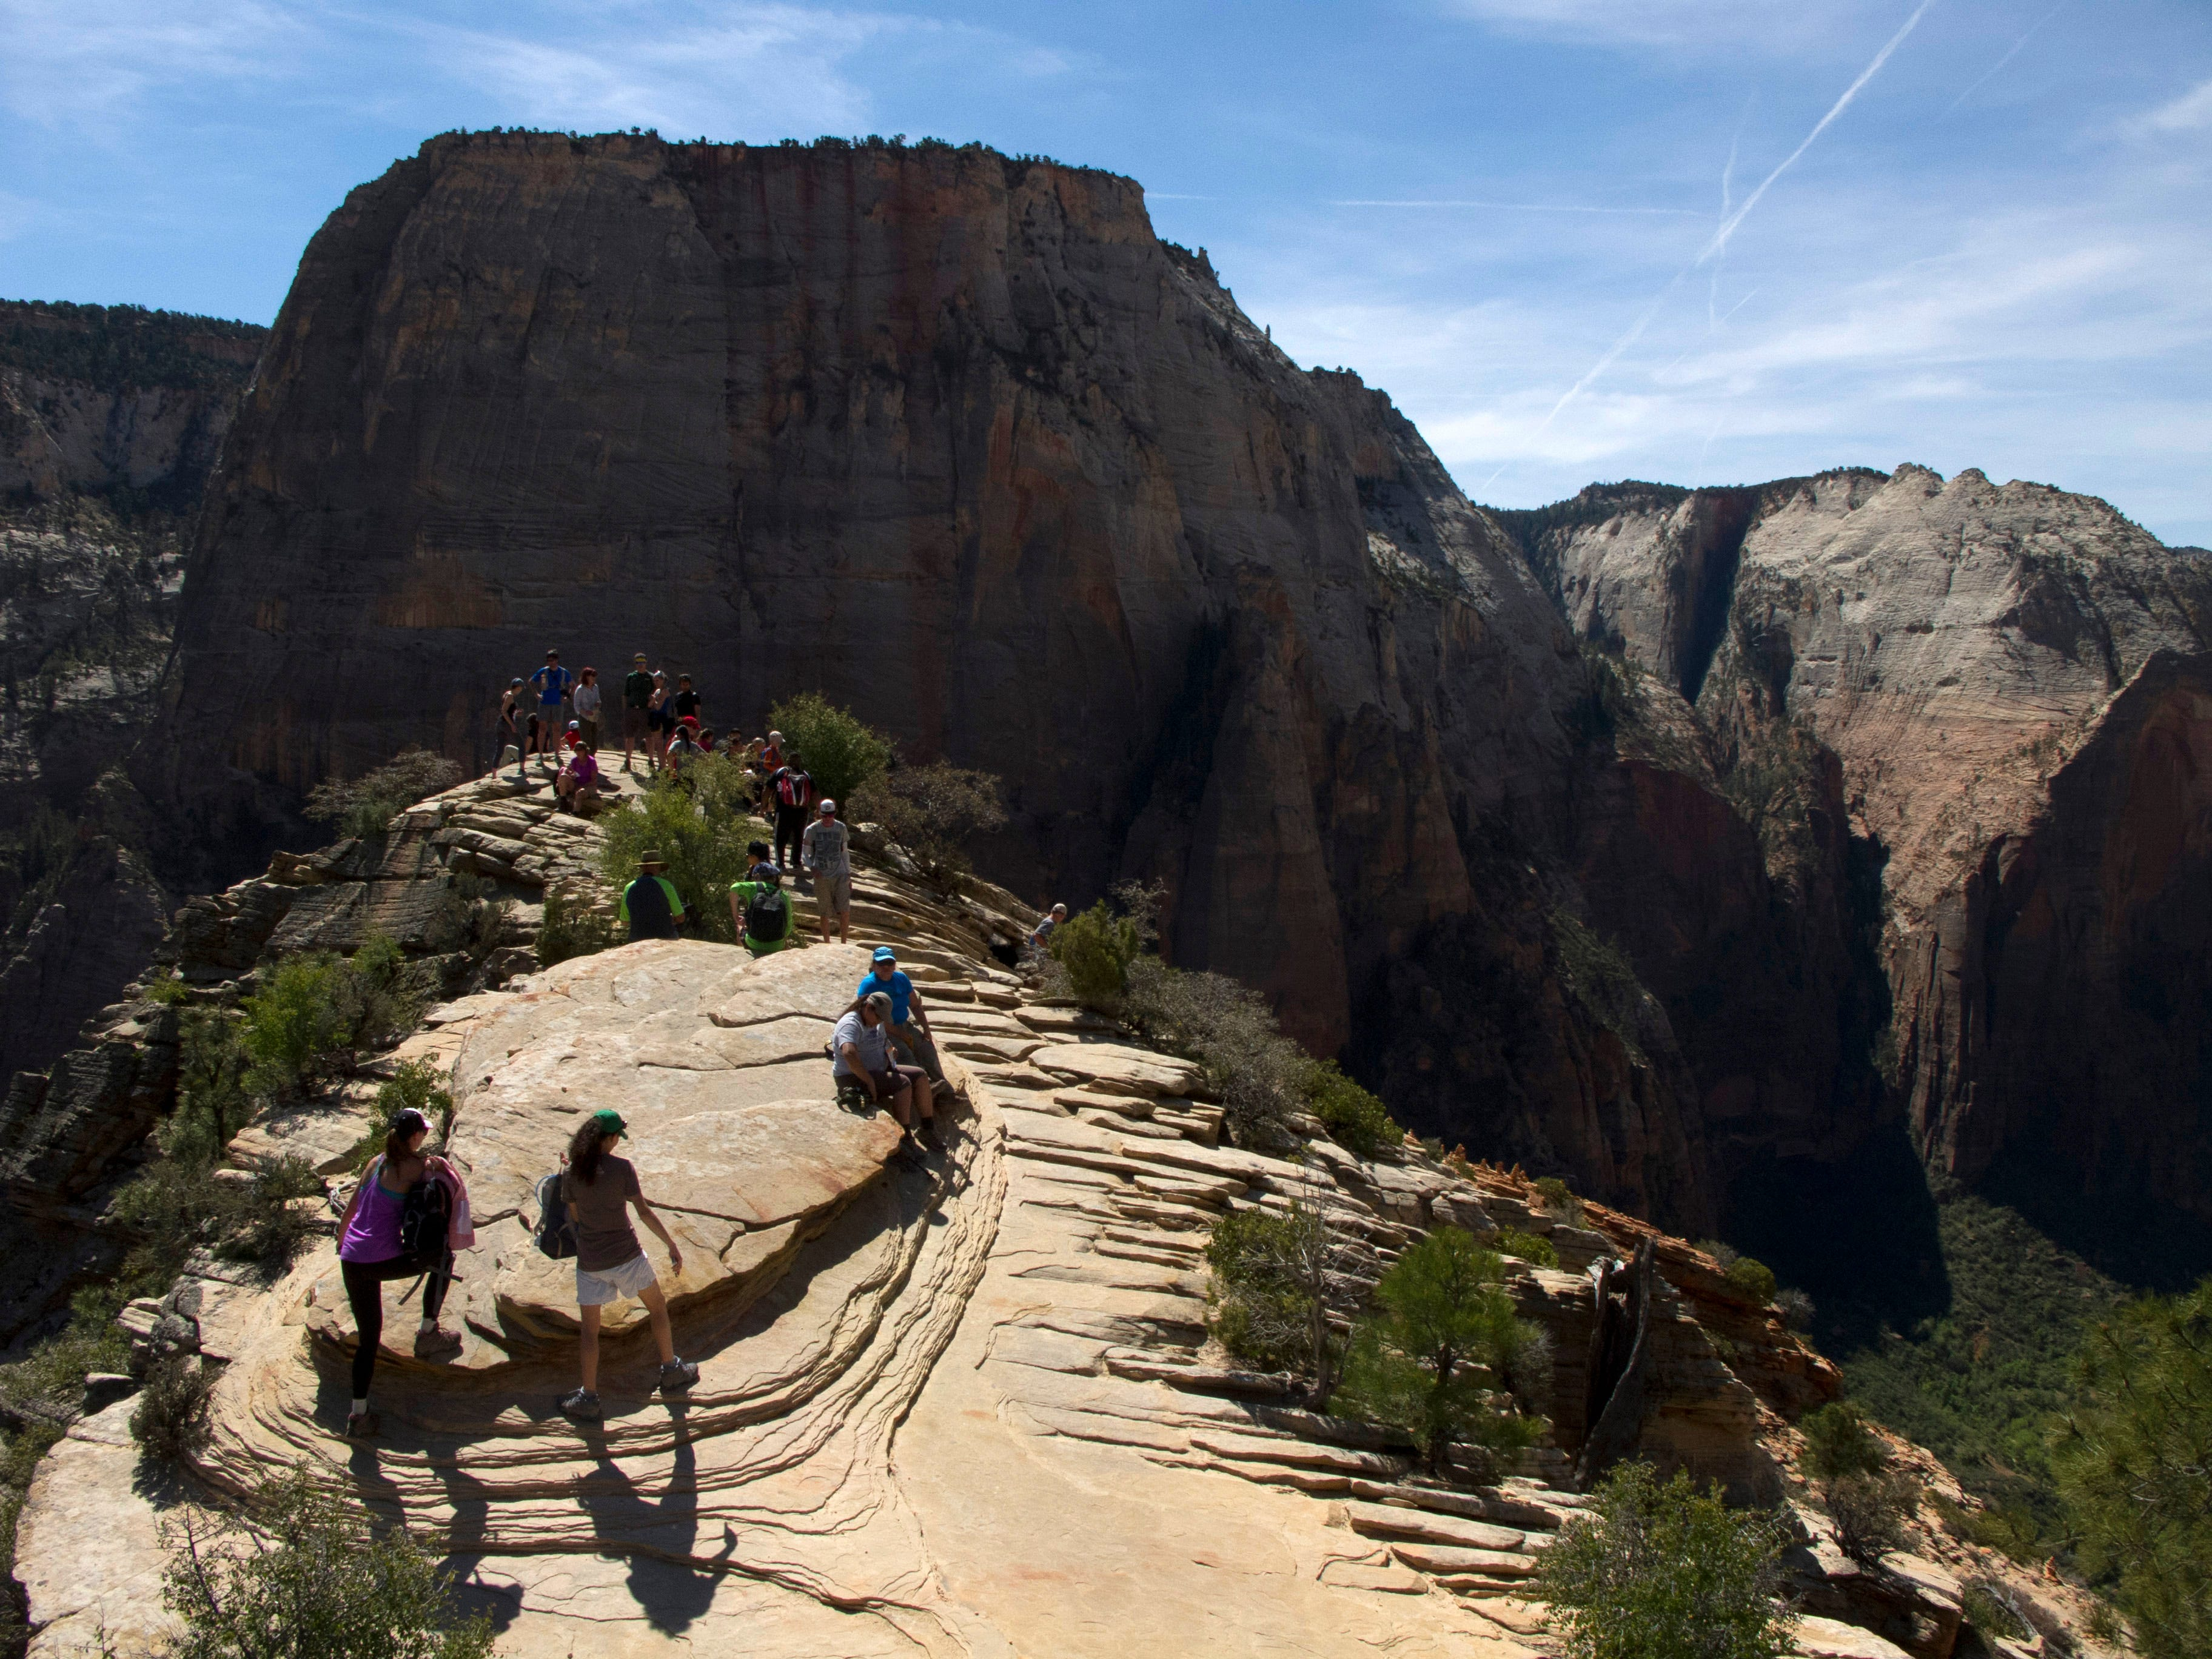 Budgets dropping as Zion deals with crowds